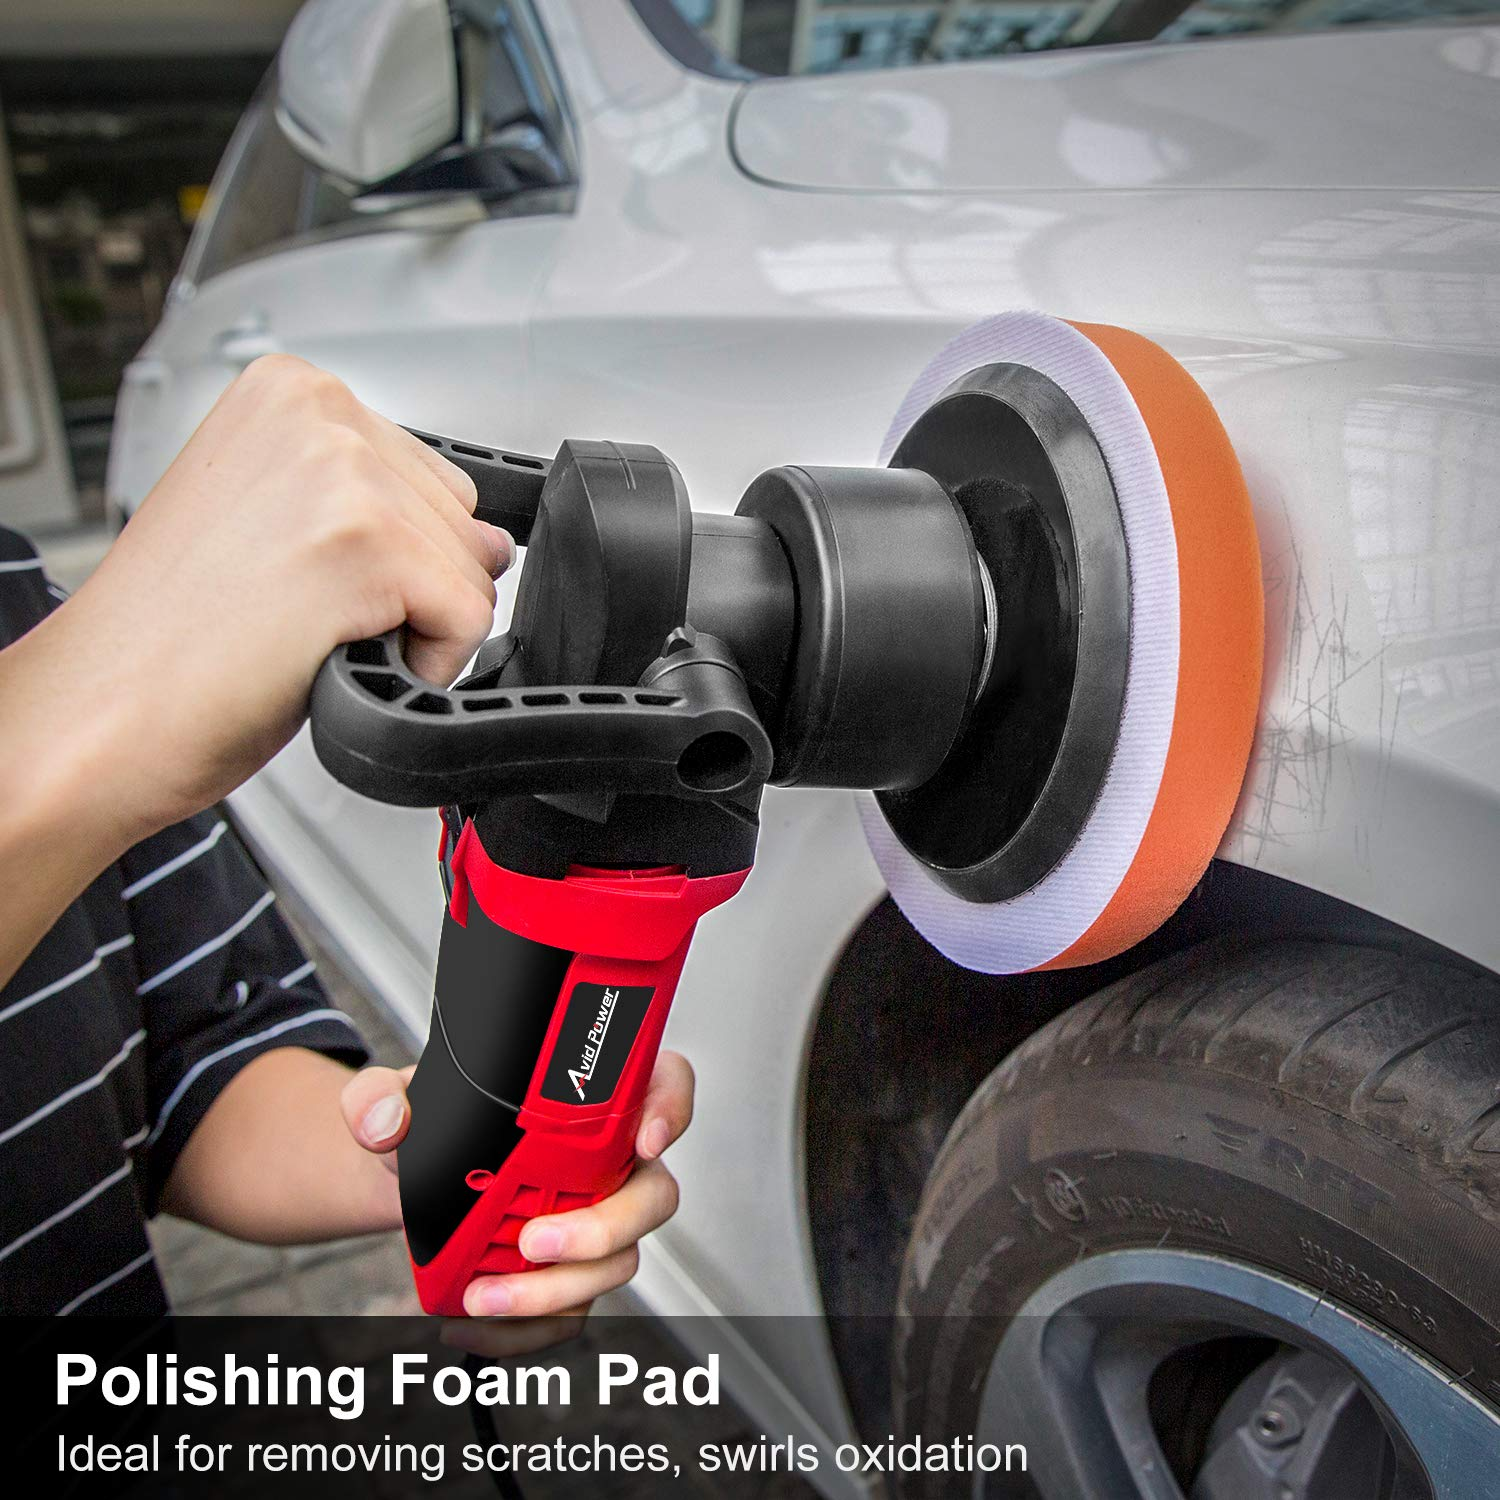 Avid Power Polisher, 6'' Random Orbital Waxer/Buffer Kit with Dual-Action, Variable Speed, 3 Foam Pads for Car Waxing, Buffing and Polishing, MEP127 by Avid Power (Image #6)